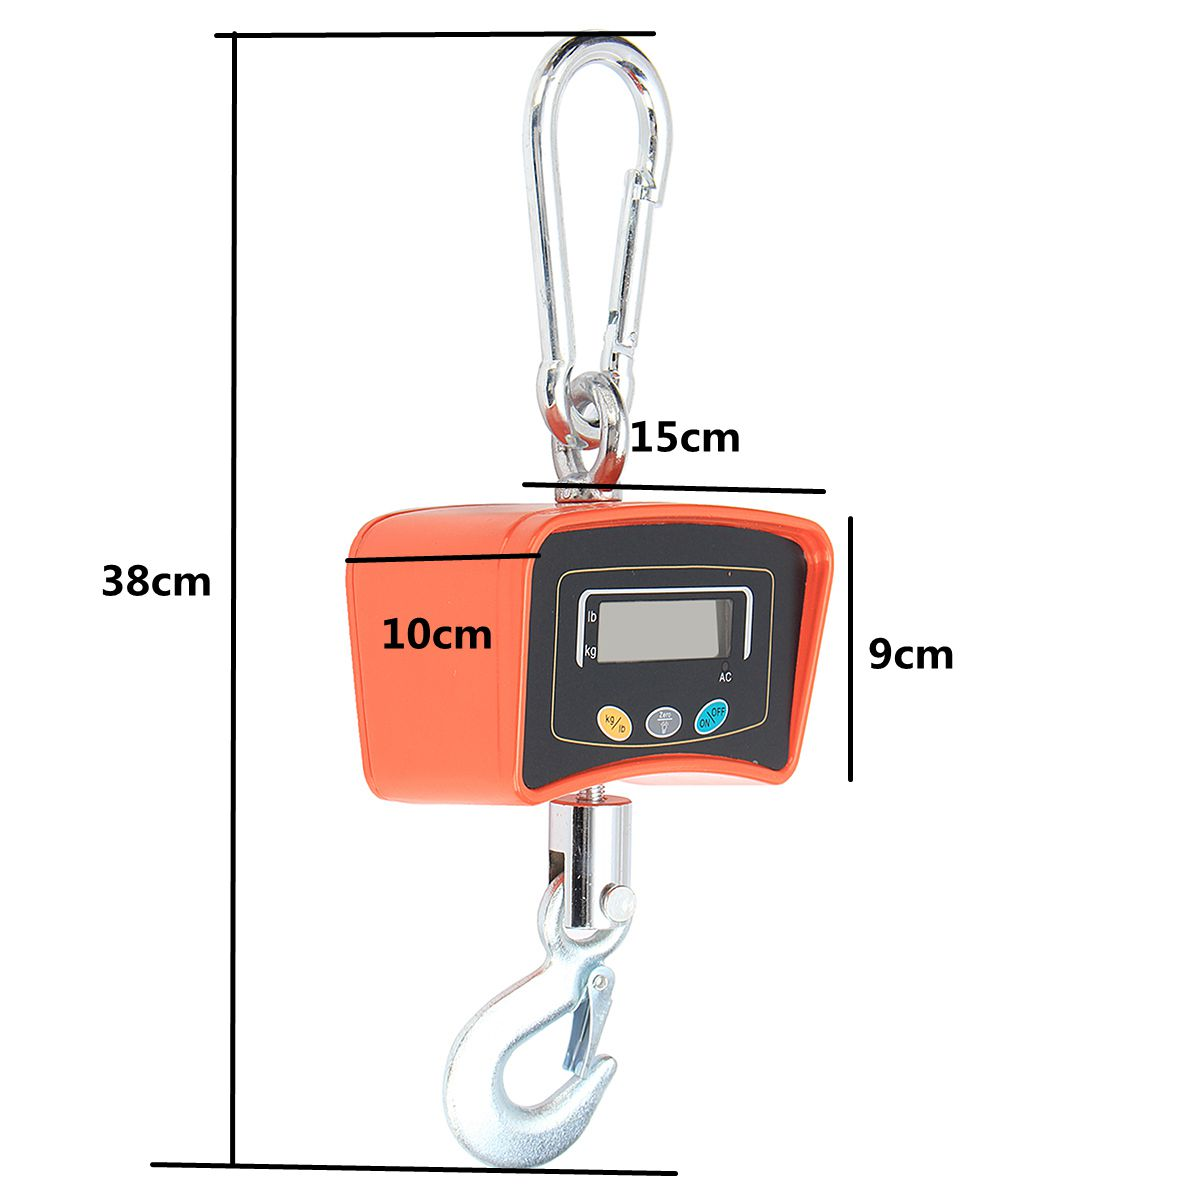 500KG/1100 LBS Digital Crane Scale 110V/220V Heavy Industrial Hanging Scale Electronic Weighing Balance Tools - 5